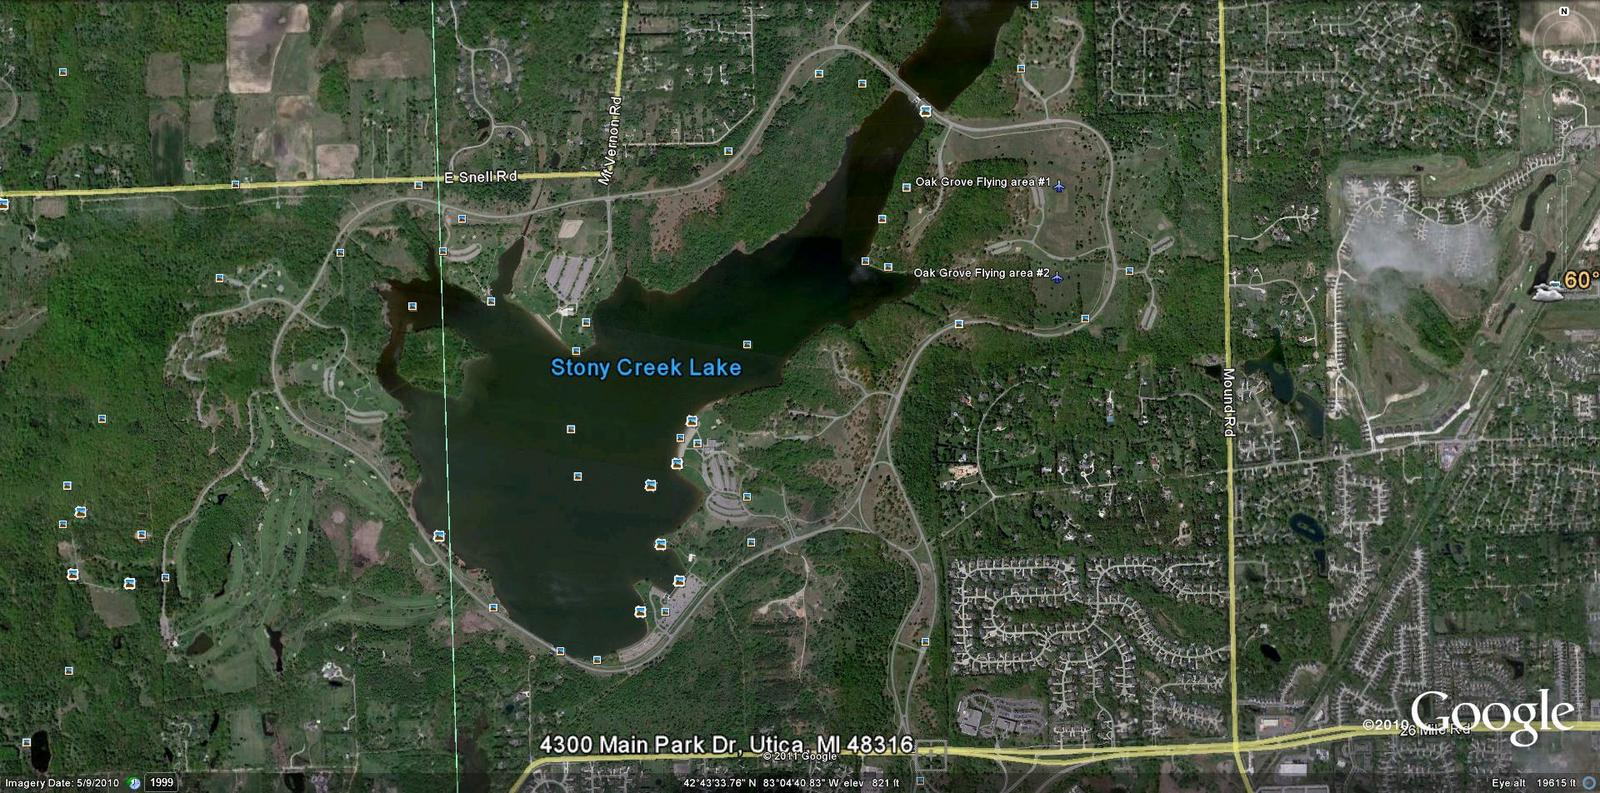 stony creek metropark map with Attachment on 5 additionally 2340629866 moreover 5 additionally 4796151110 moreover Map.